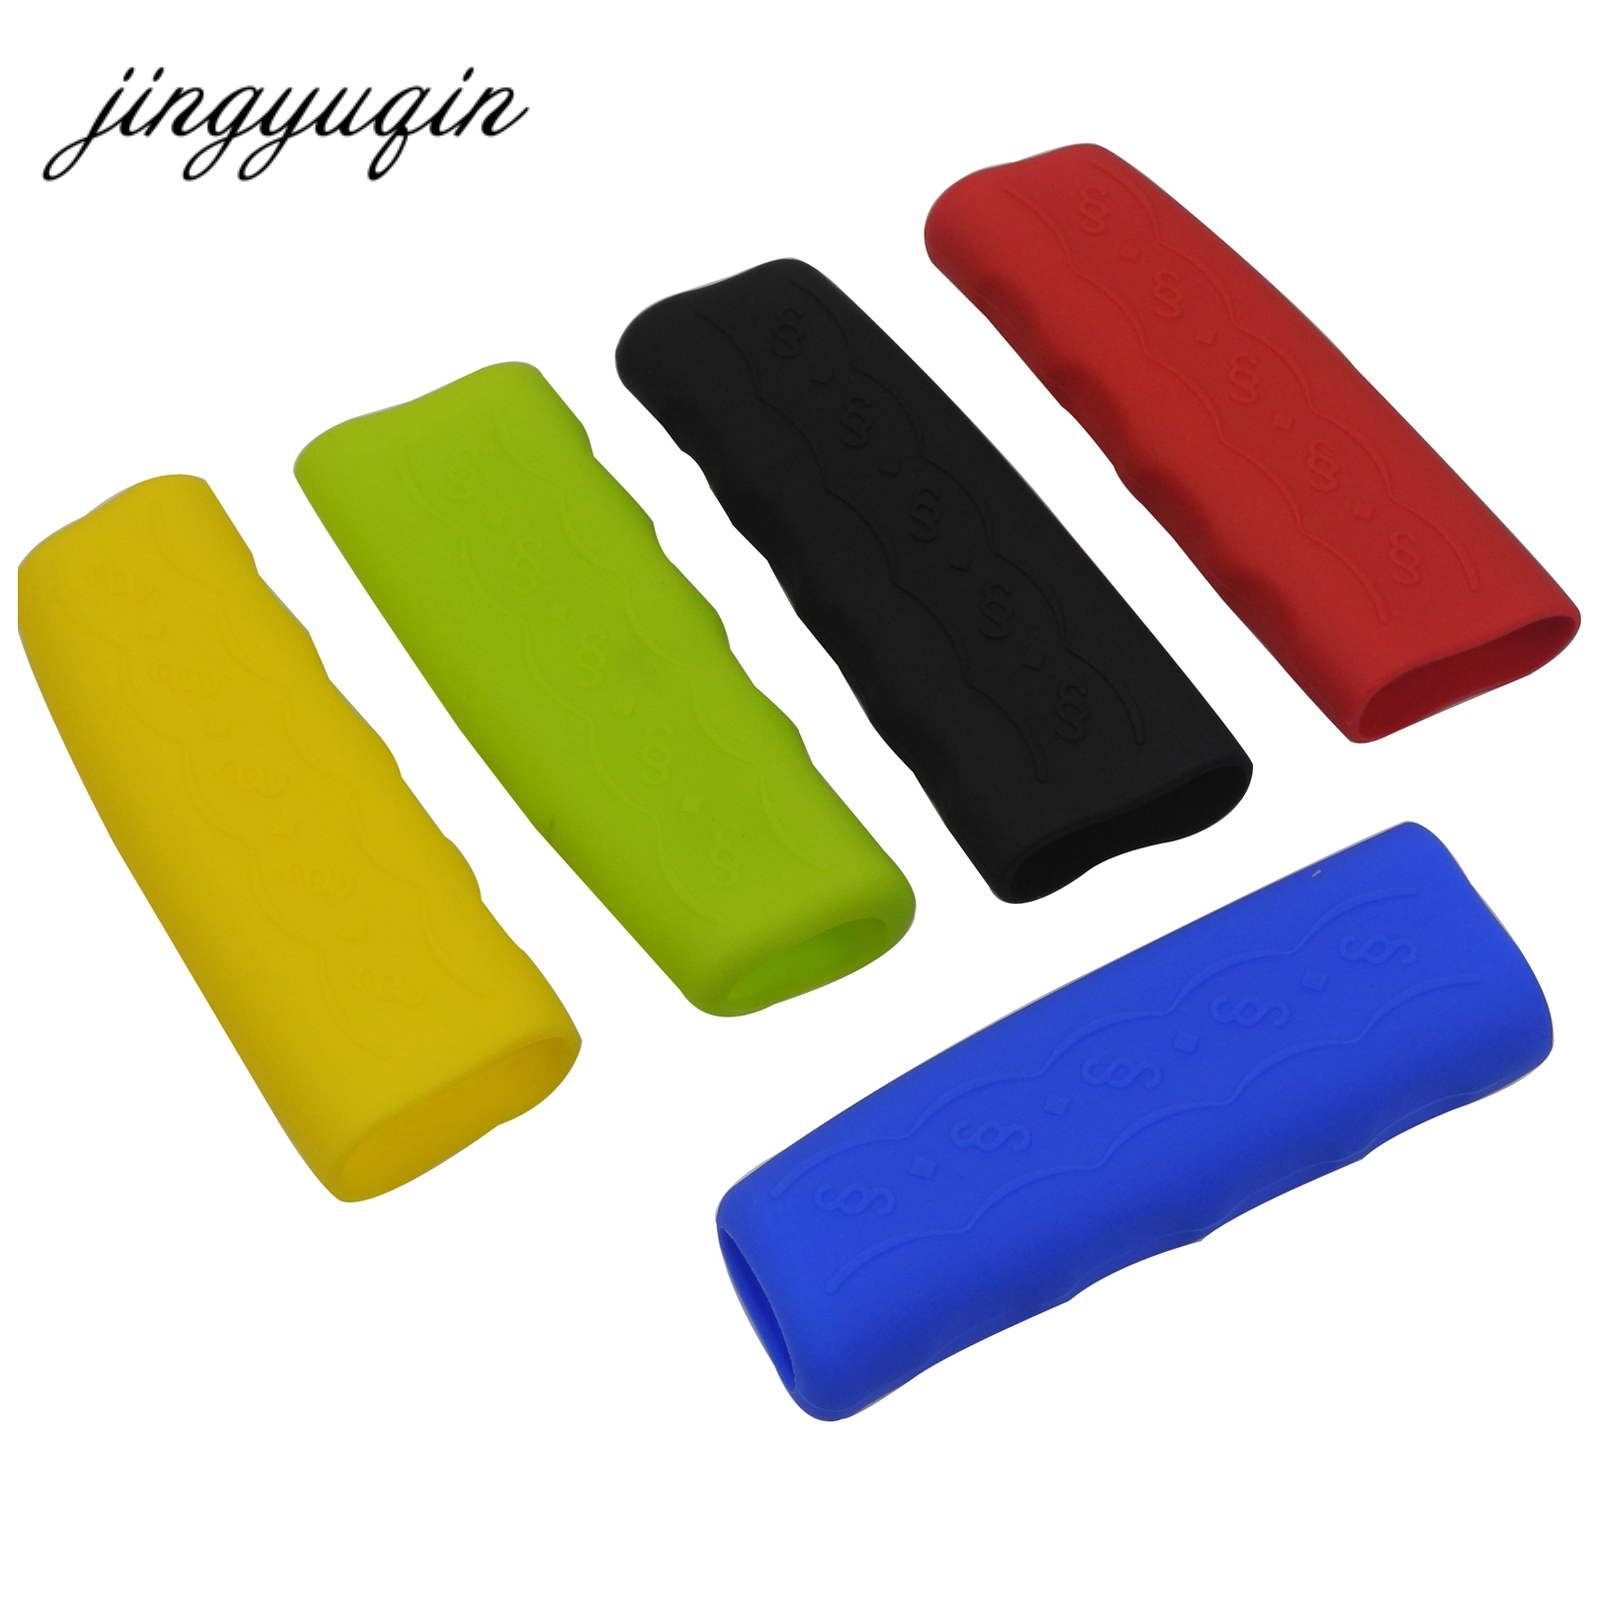 Jingyuqin Gel Case Parking Hand Brake Grips Sleeve Universal Decoration 10pcs/lot Anti-slip Car Handbrake Covers Sleeve Silicone